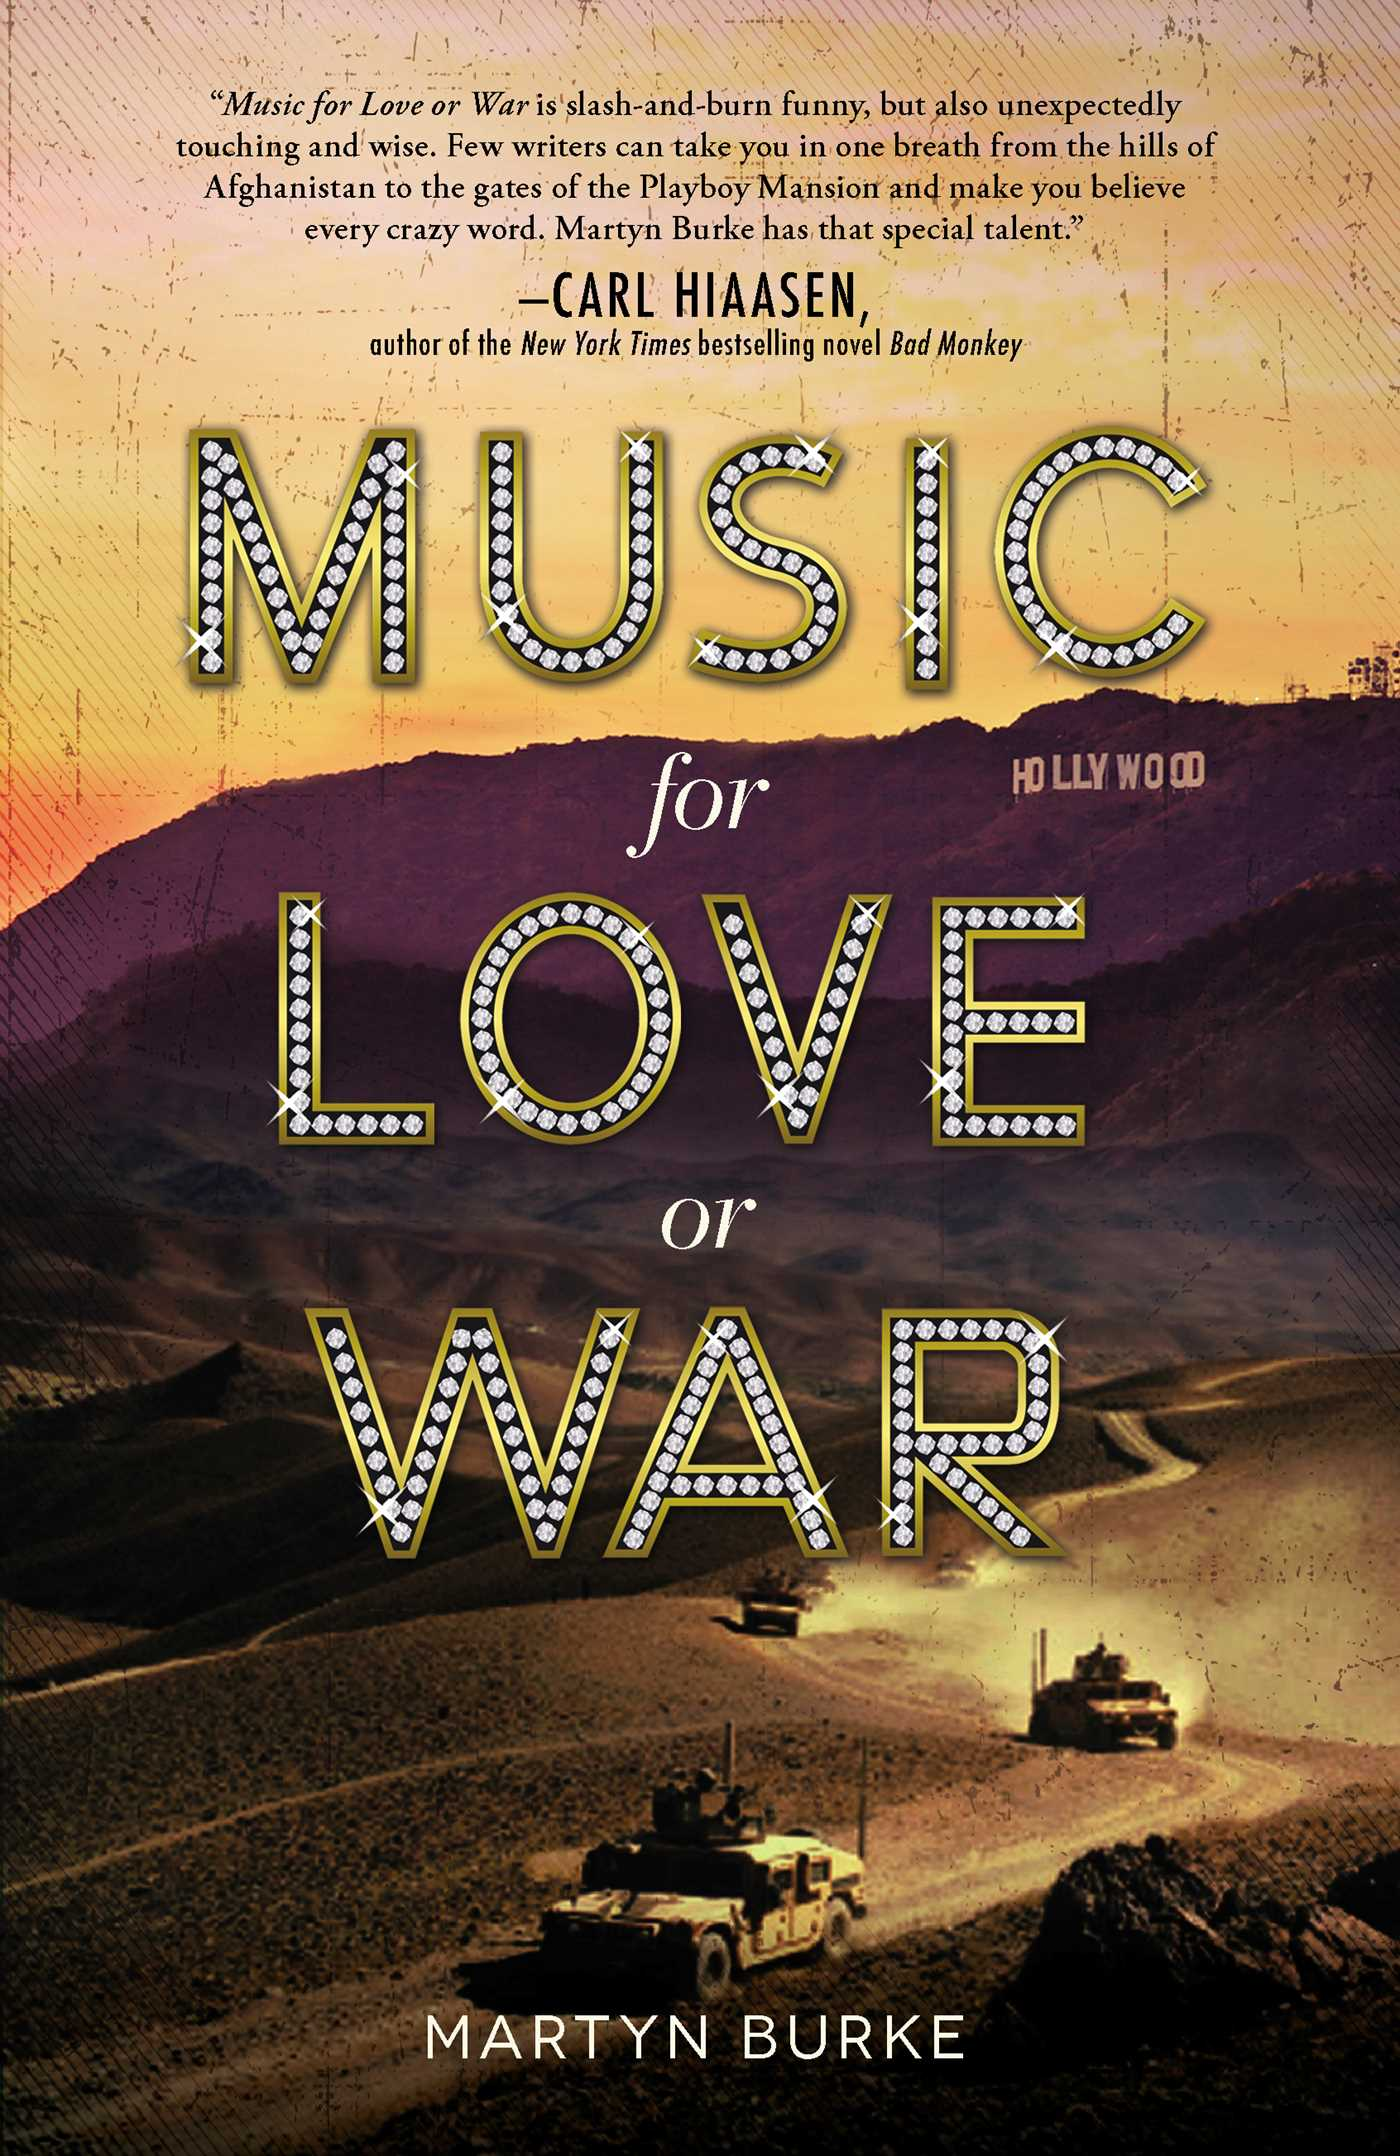 Music for love or war 9781507200926 hr